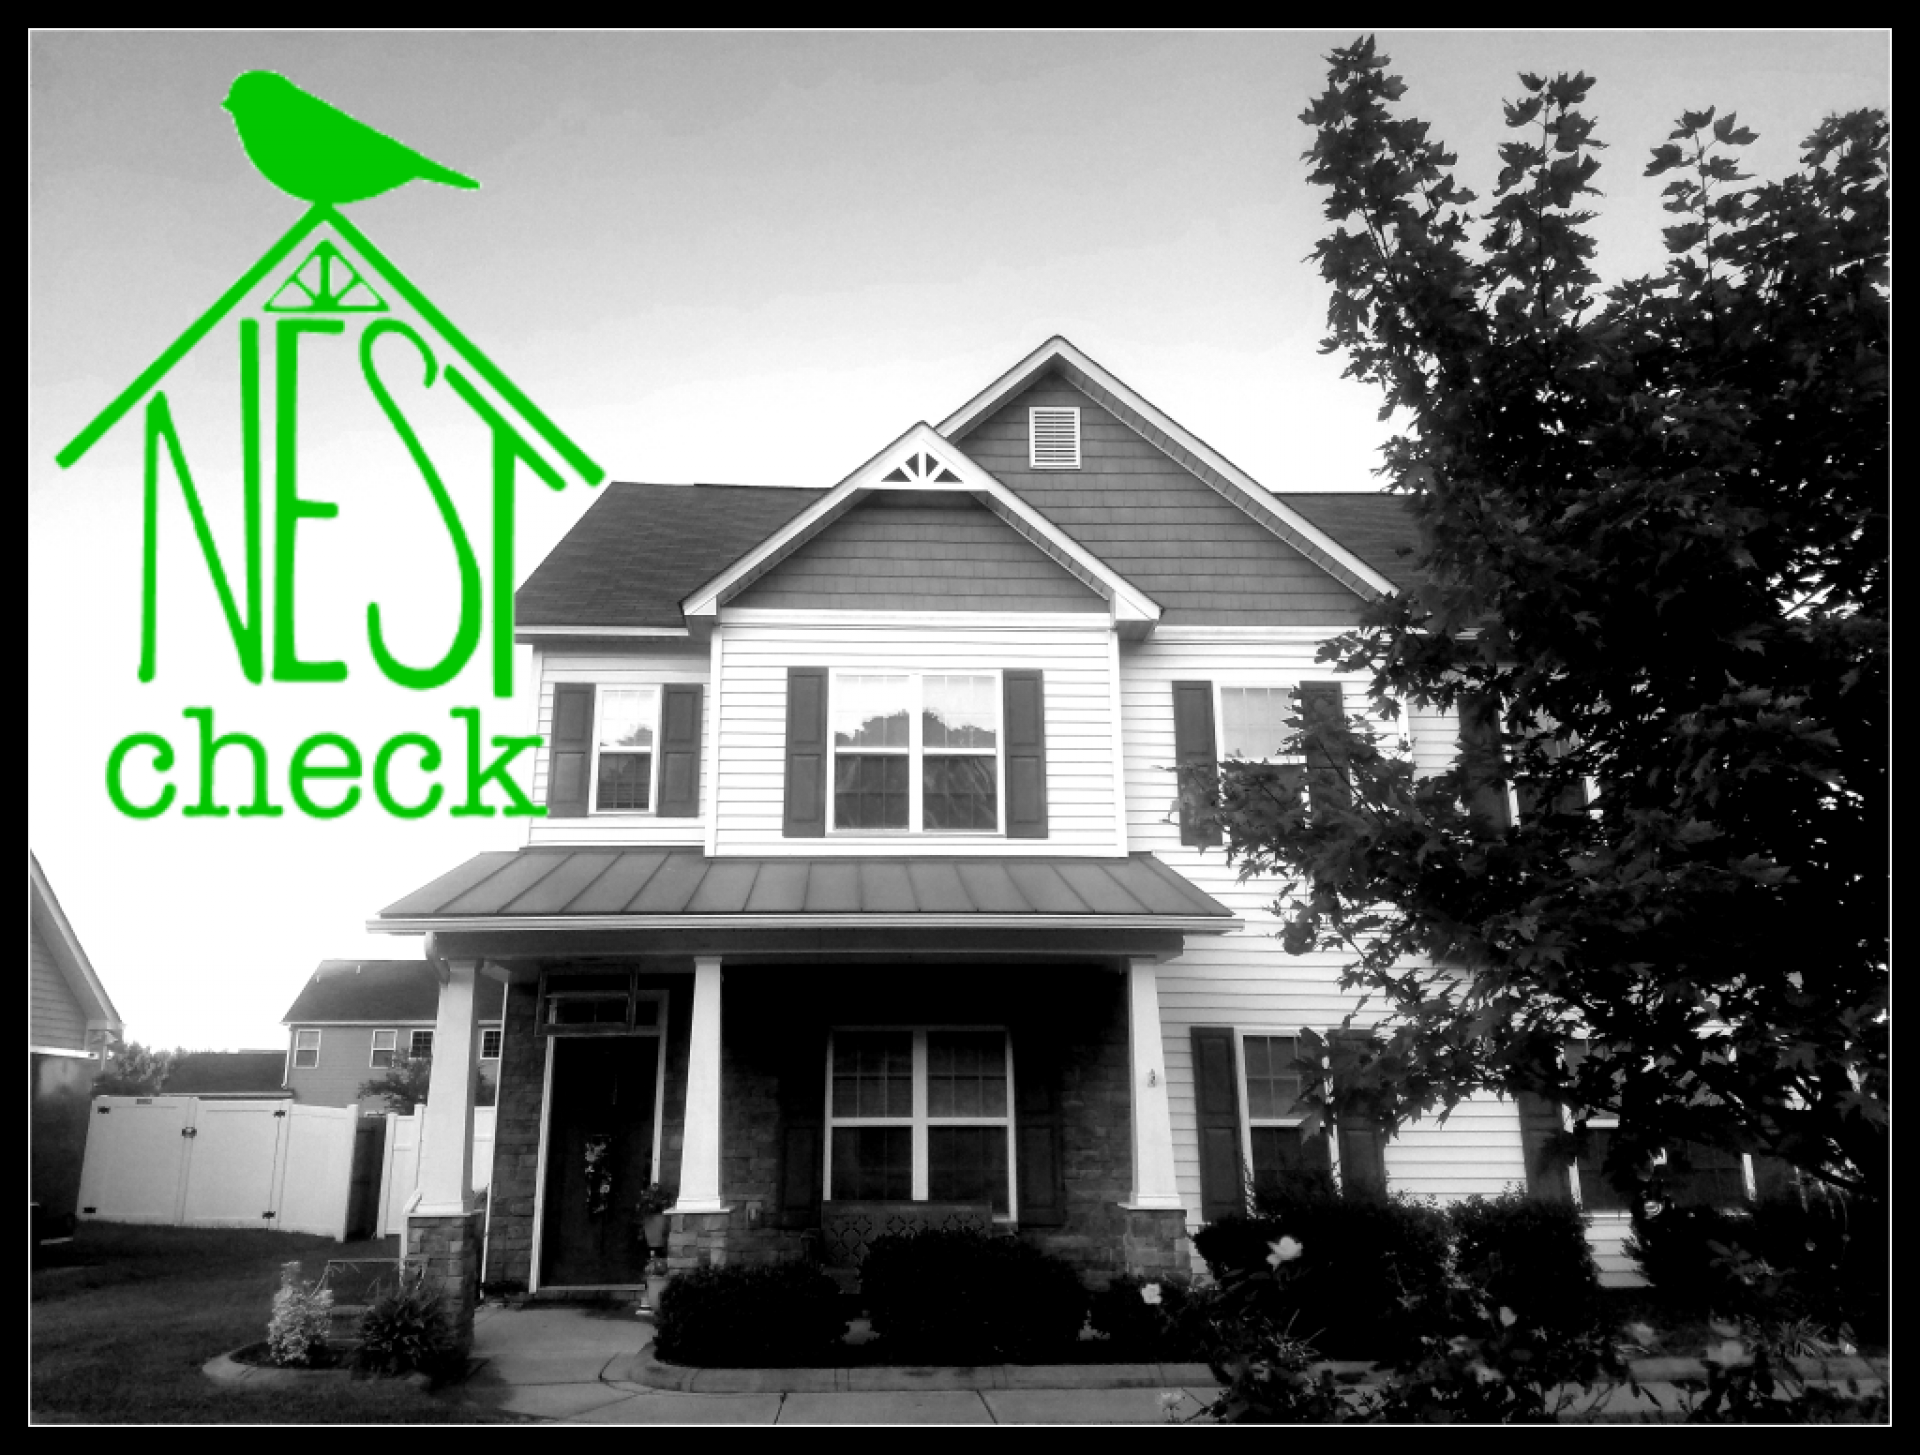 Nest Check Home Inspection